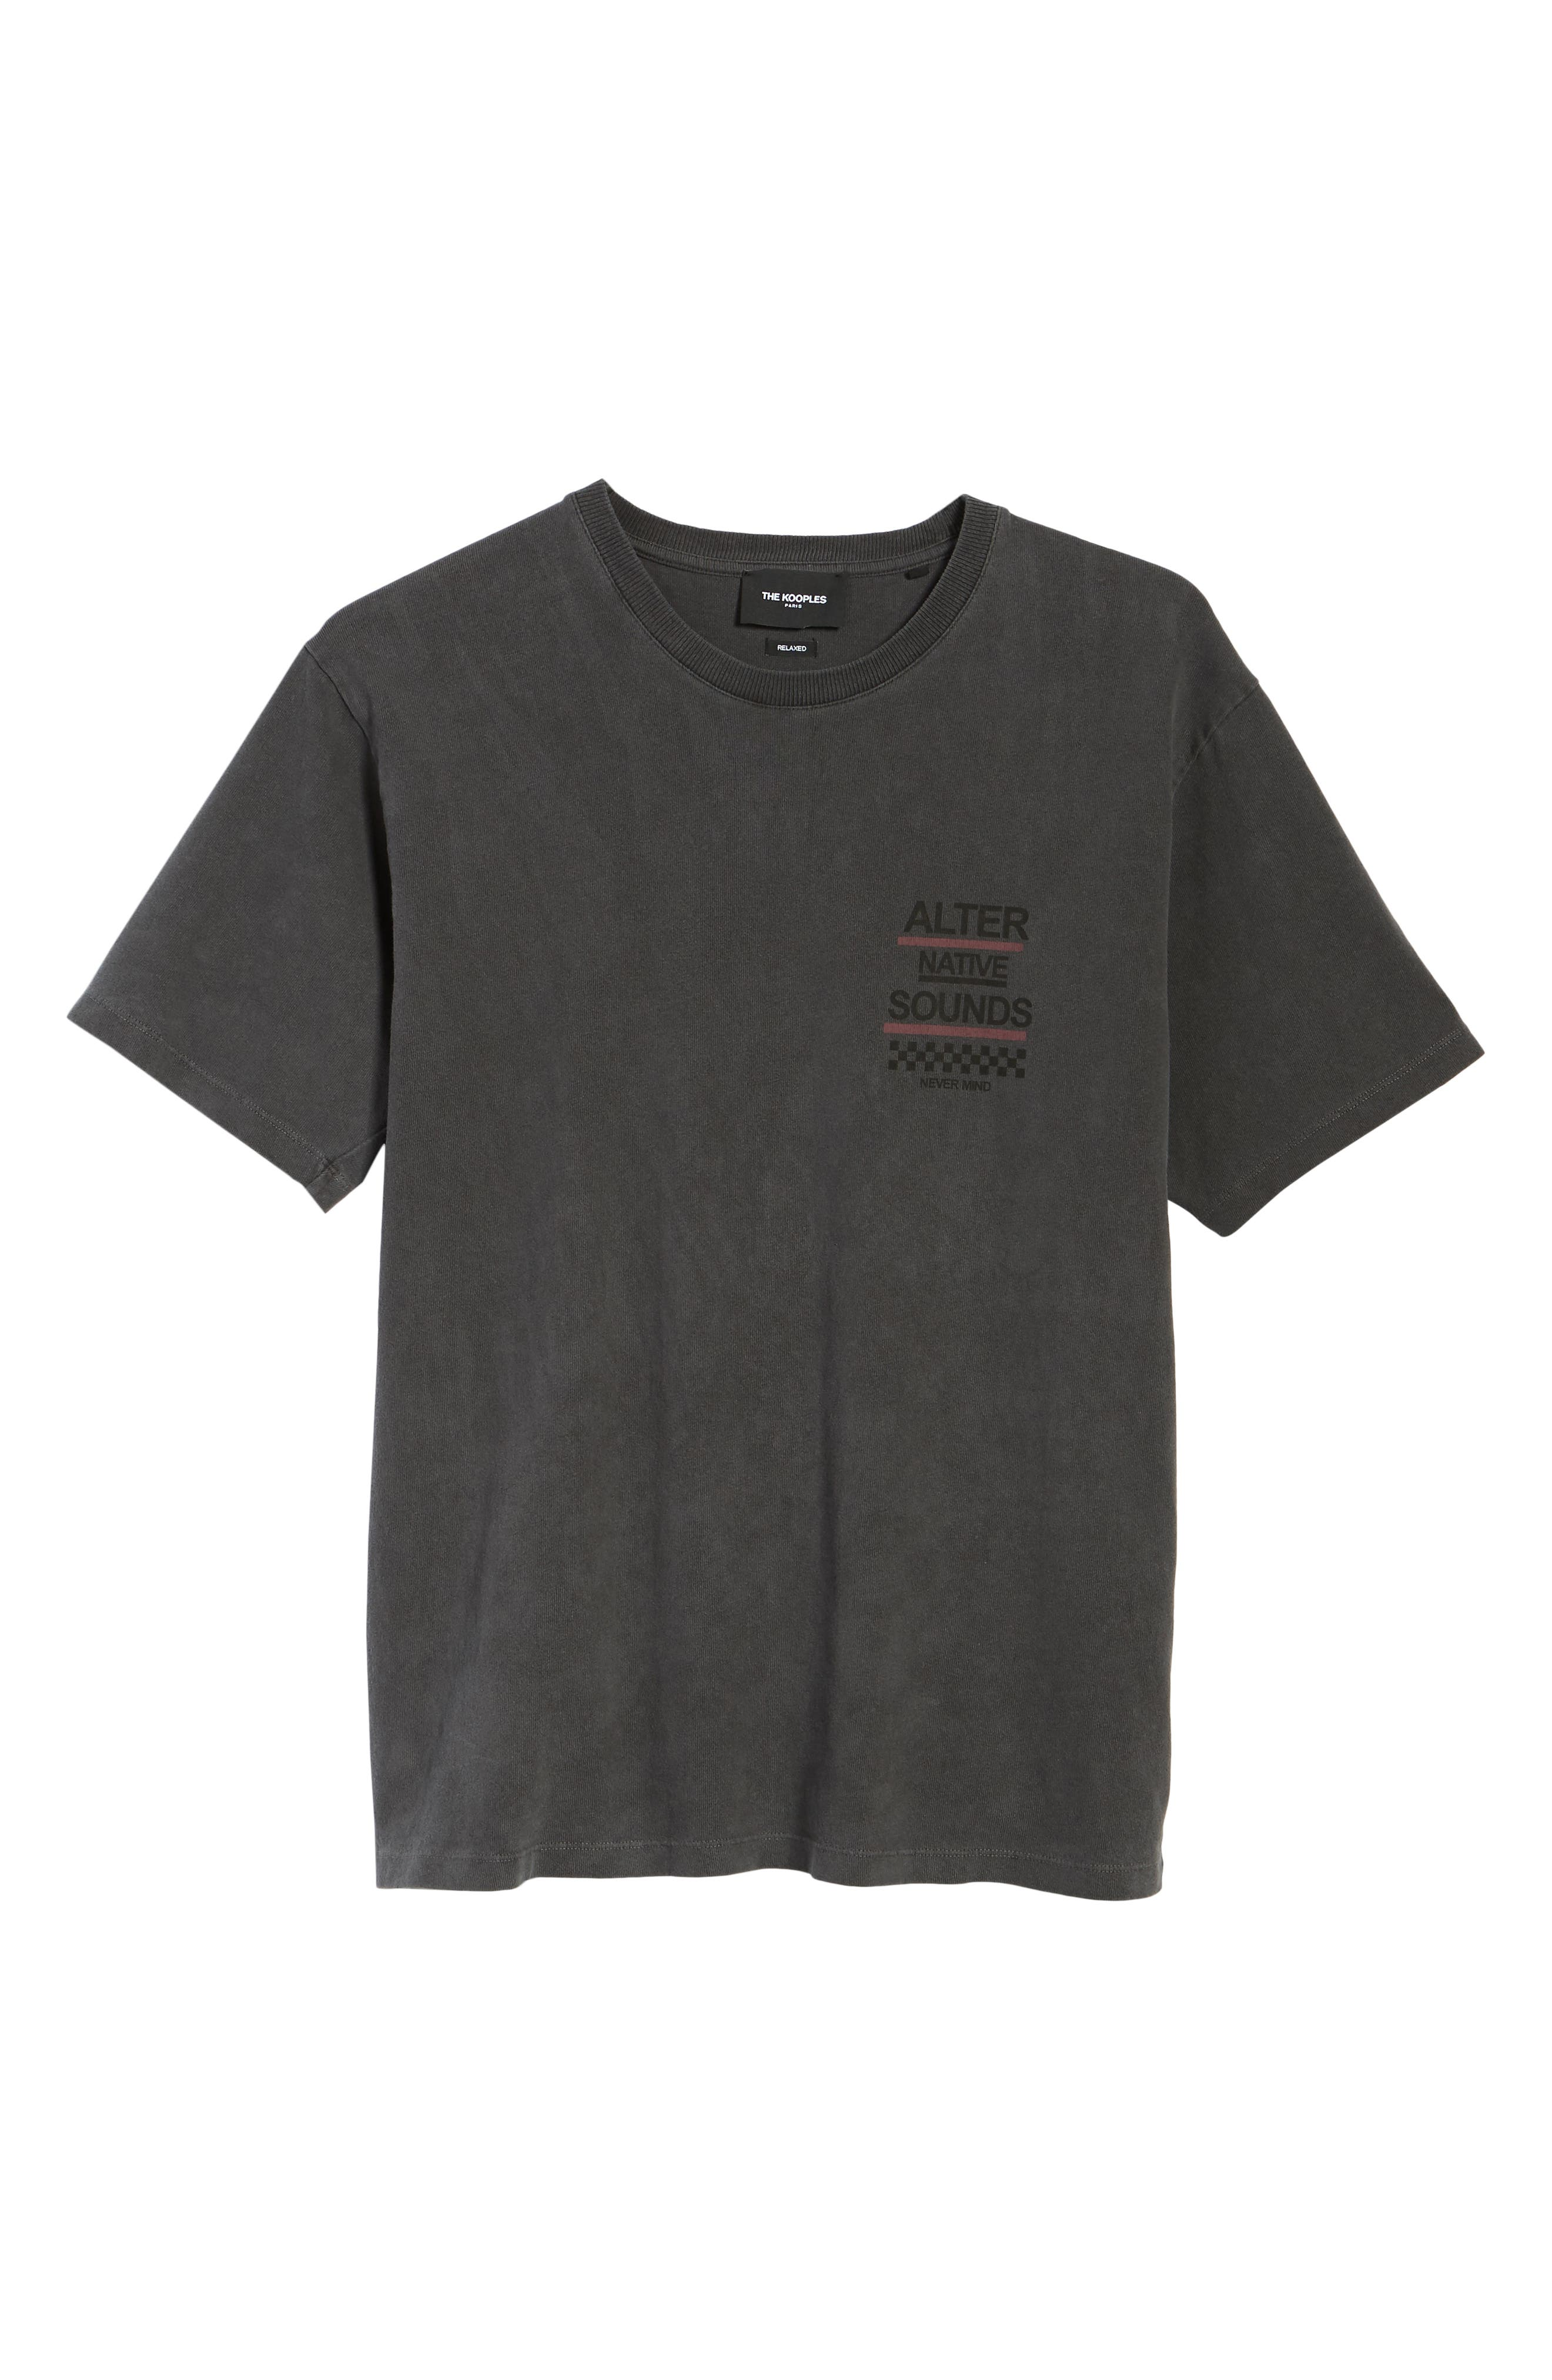 THE KOOPLES, Graphic T-Shirt, Alternate thumbnail 6, color, WASHED GREY